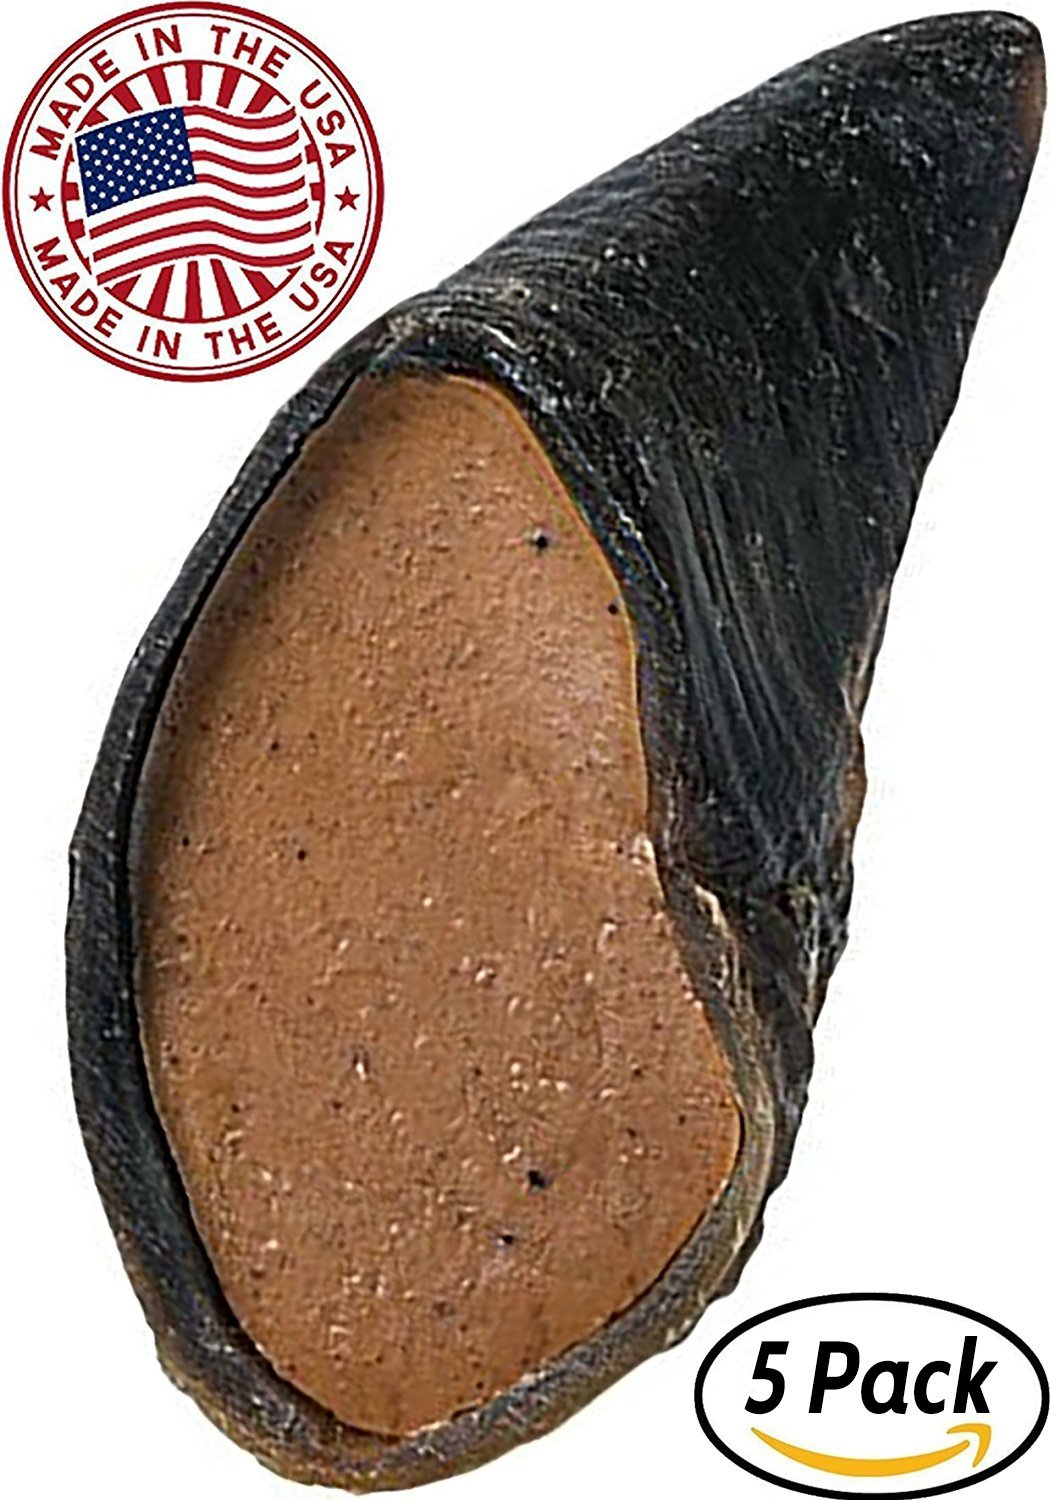 Peanut Butter Filled Cow Hooves for Dogs - Made in the USA Bulk Dog Dental Treats & Dog Chews Beef Hoof, American Made (5 Peanut Butter Filled Hooves)